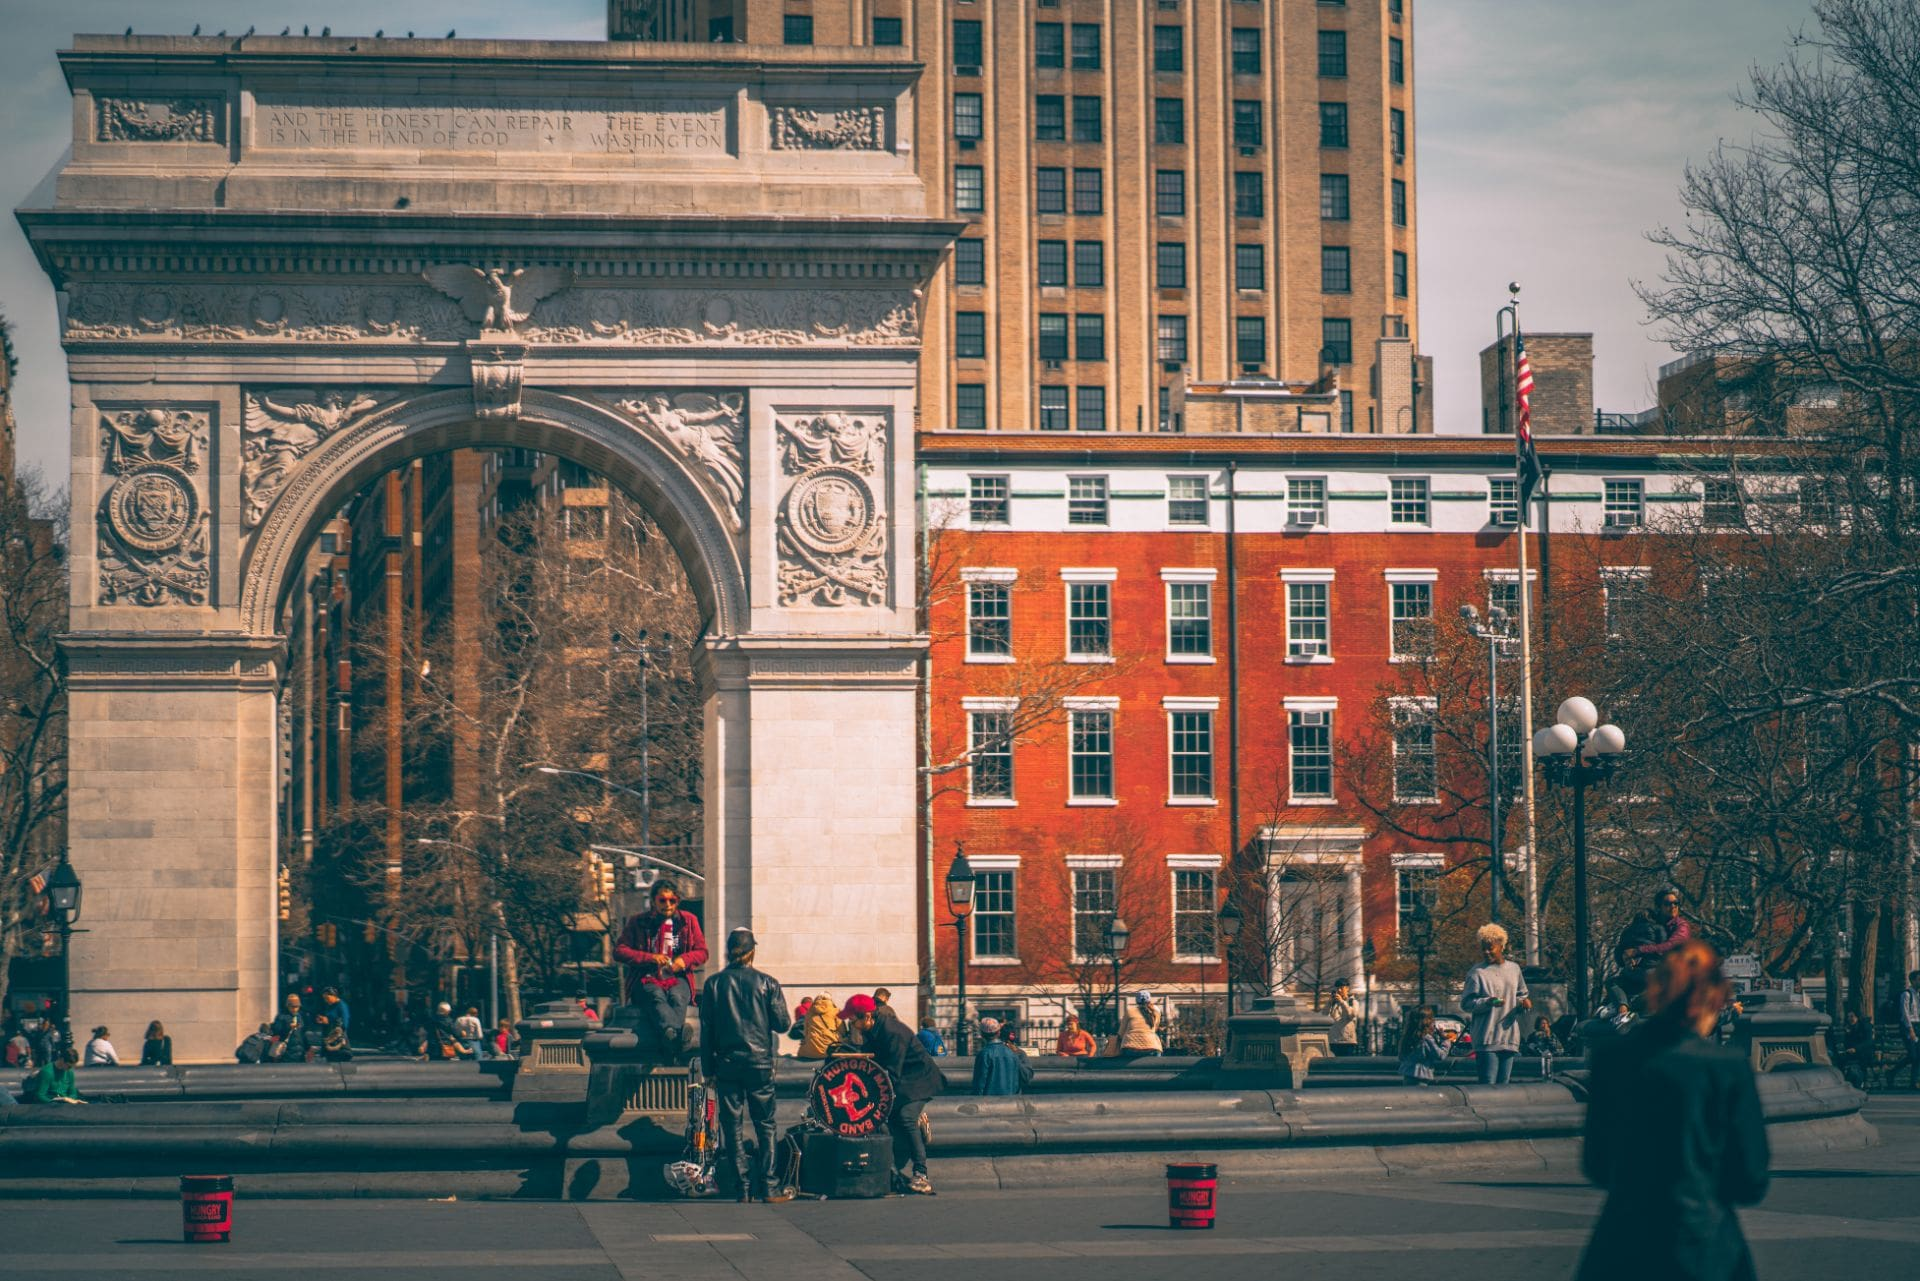 locals-relaxing-by-washington-square-arch-in-washington-square-park-in-new-york-city